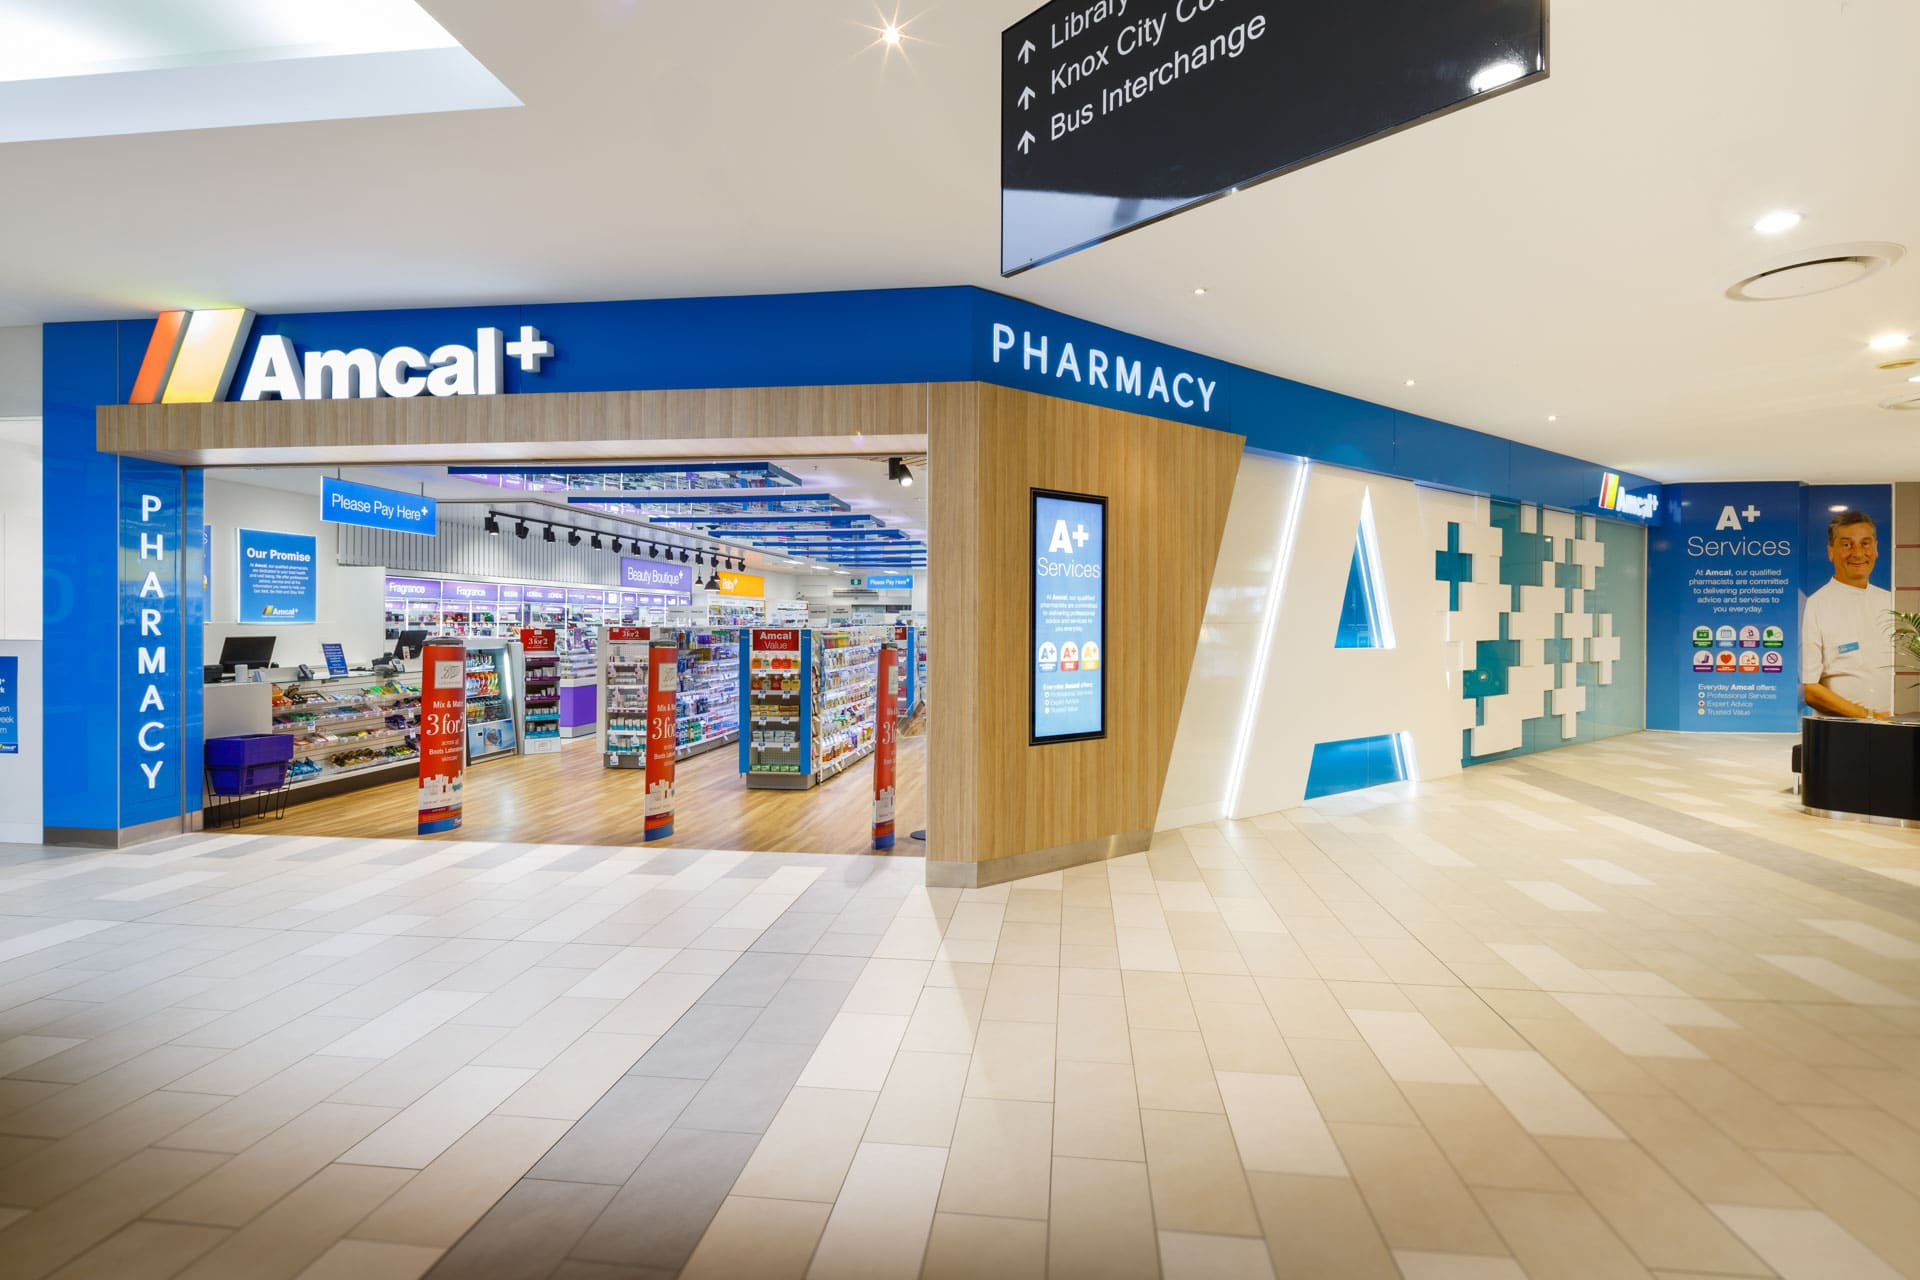 amcal+ pharmacy internal photograph of main entry area by sigma pharmaceuticals in stud park shopping centre